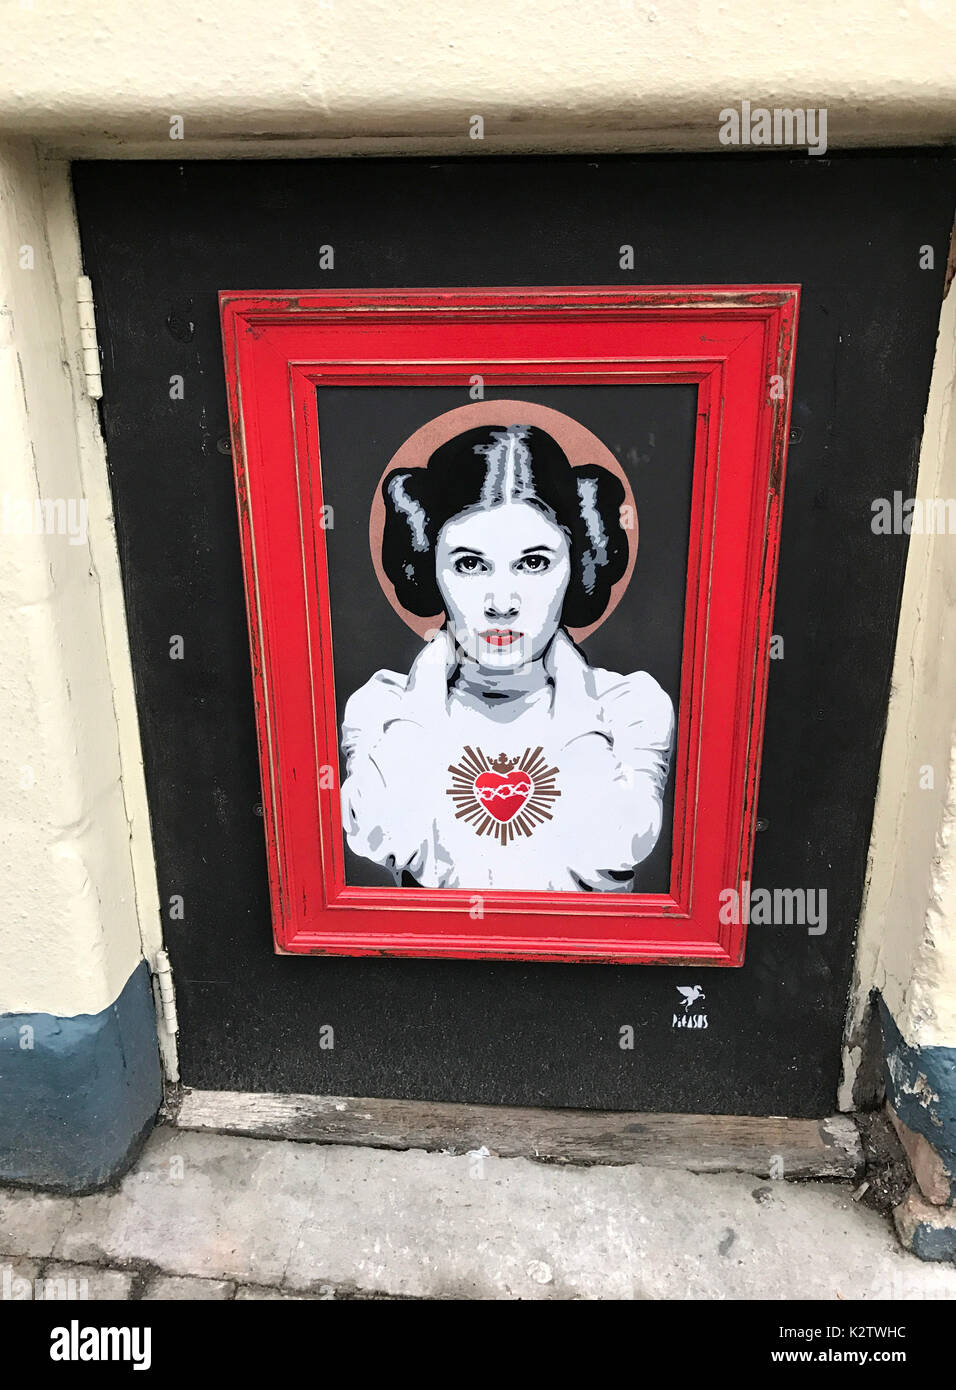 Photo Must Be Credited ©Alpha Press 066465 31/01/2017 Carrie Fisher street art by Pegasus in North London. - Stock Image